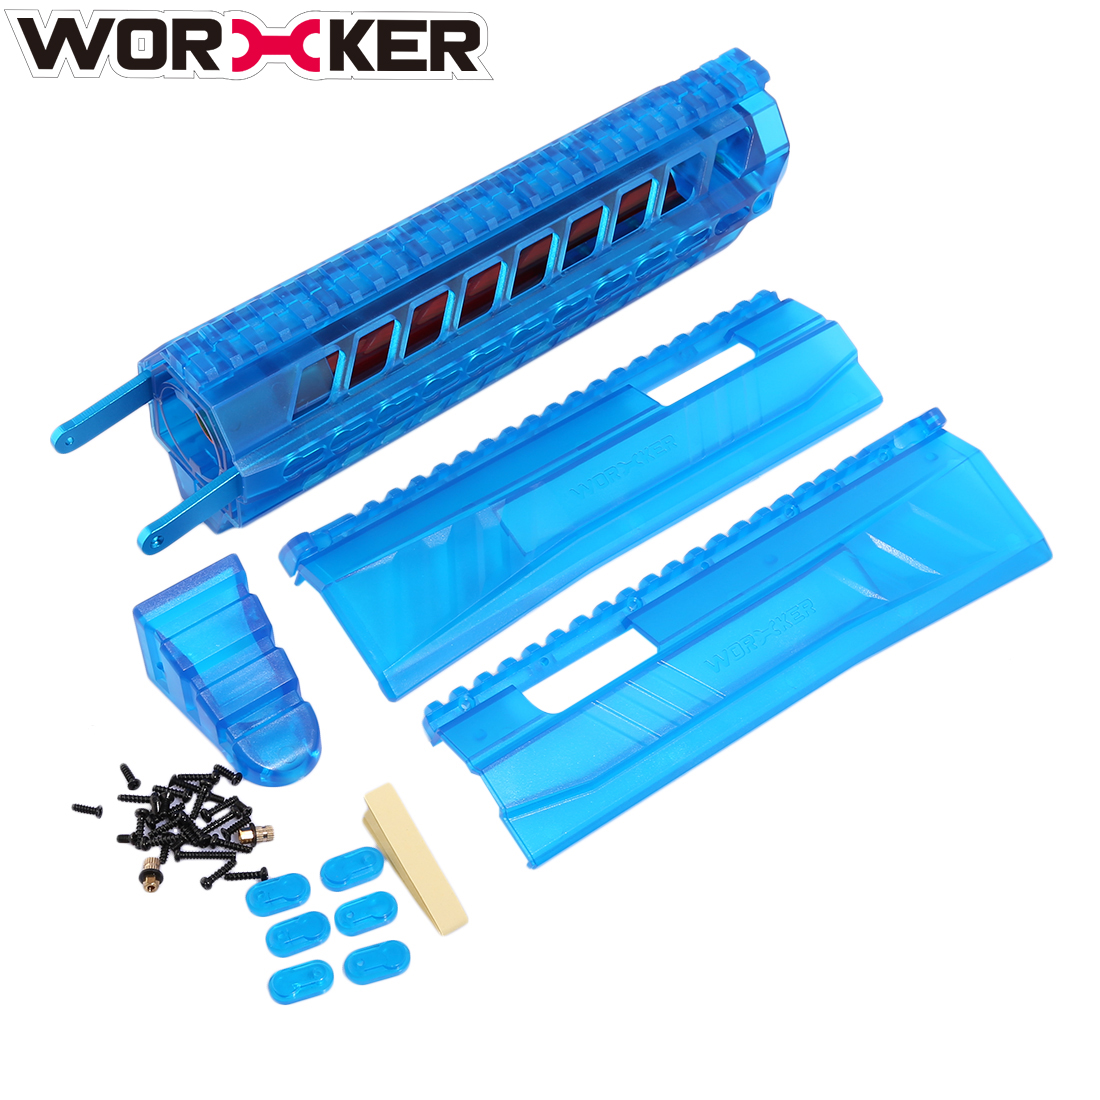 WORKER Modified Integrated Built-in Front Pull-down Kit for Nerf Retaliator - Transparent Blue цена и фото